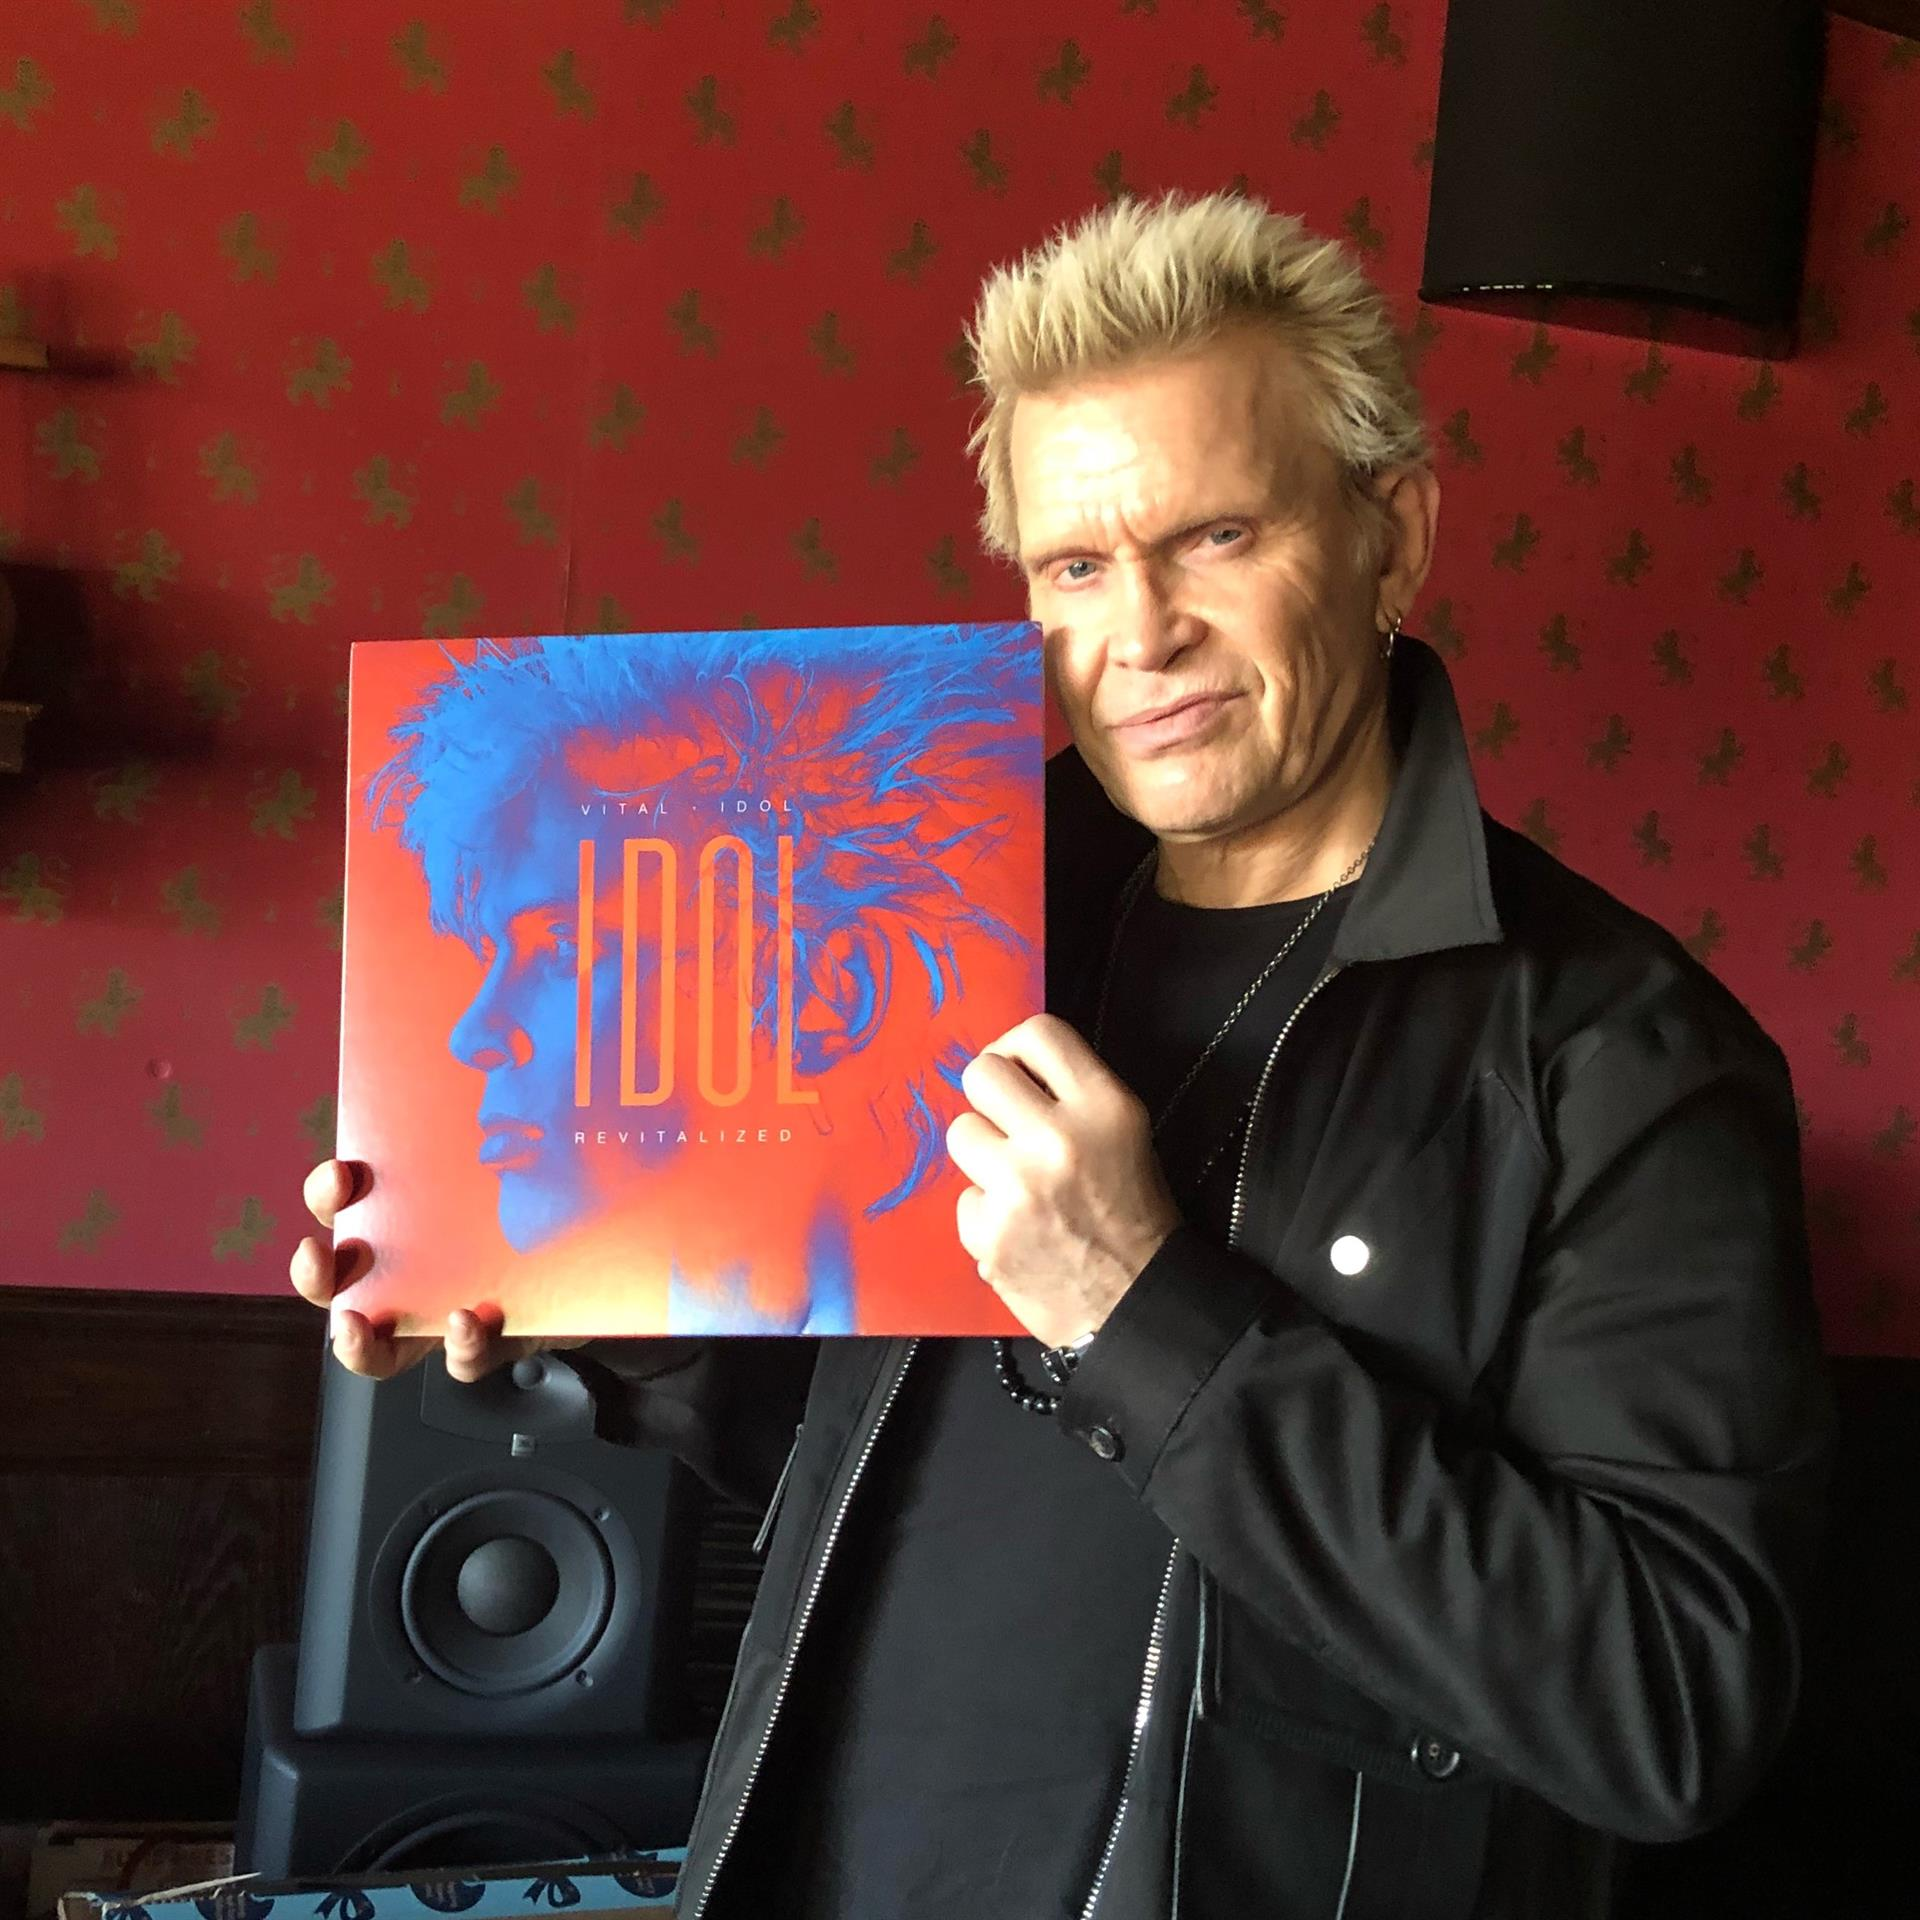 Billy Idol and Vinyl Release of Idol Revitalization